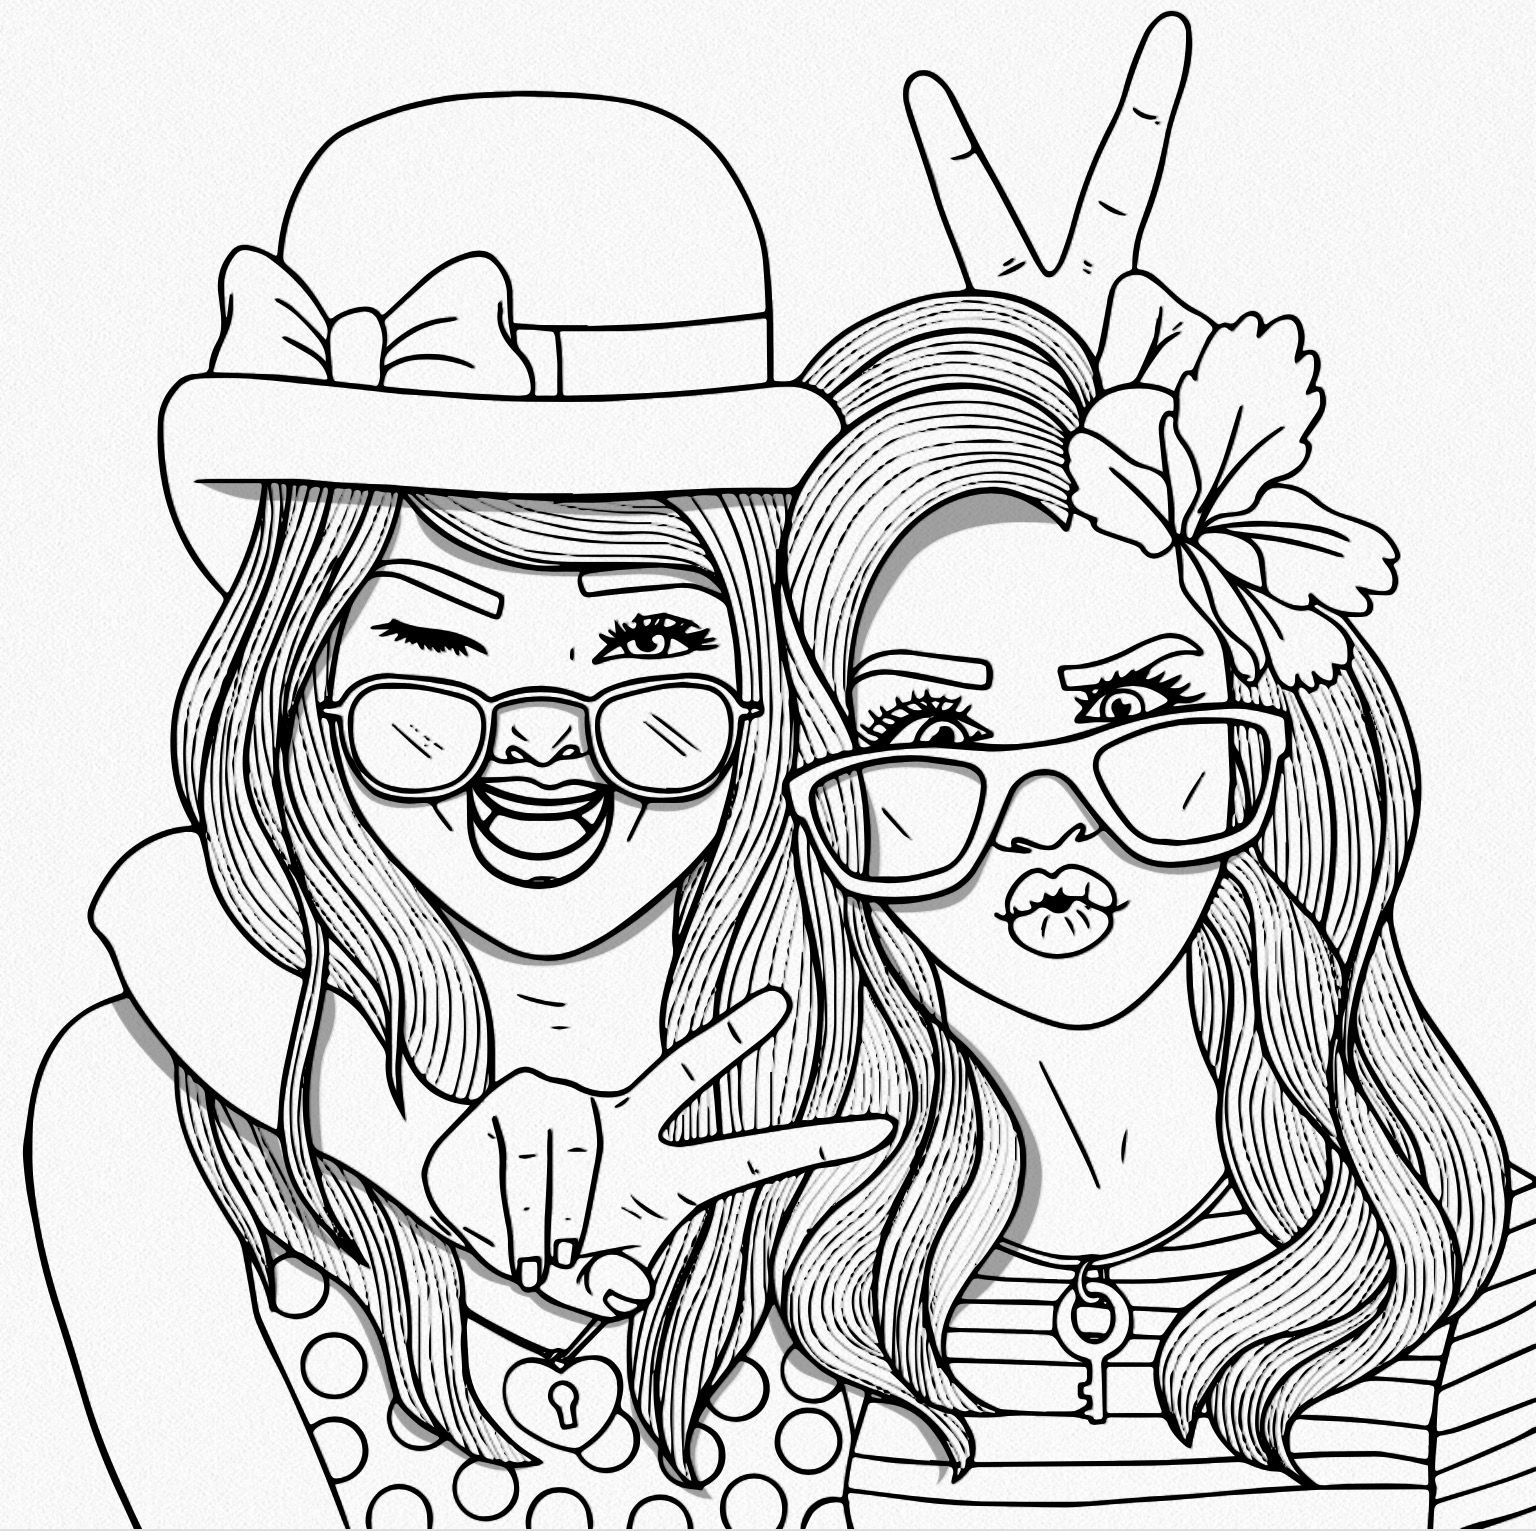 coloring pictures of people people coloring pages getcoloringpagescom coloring pictures of people 1 1